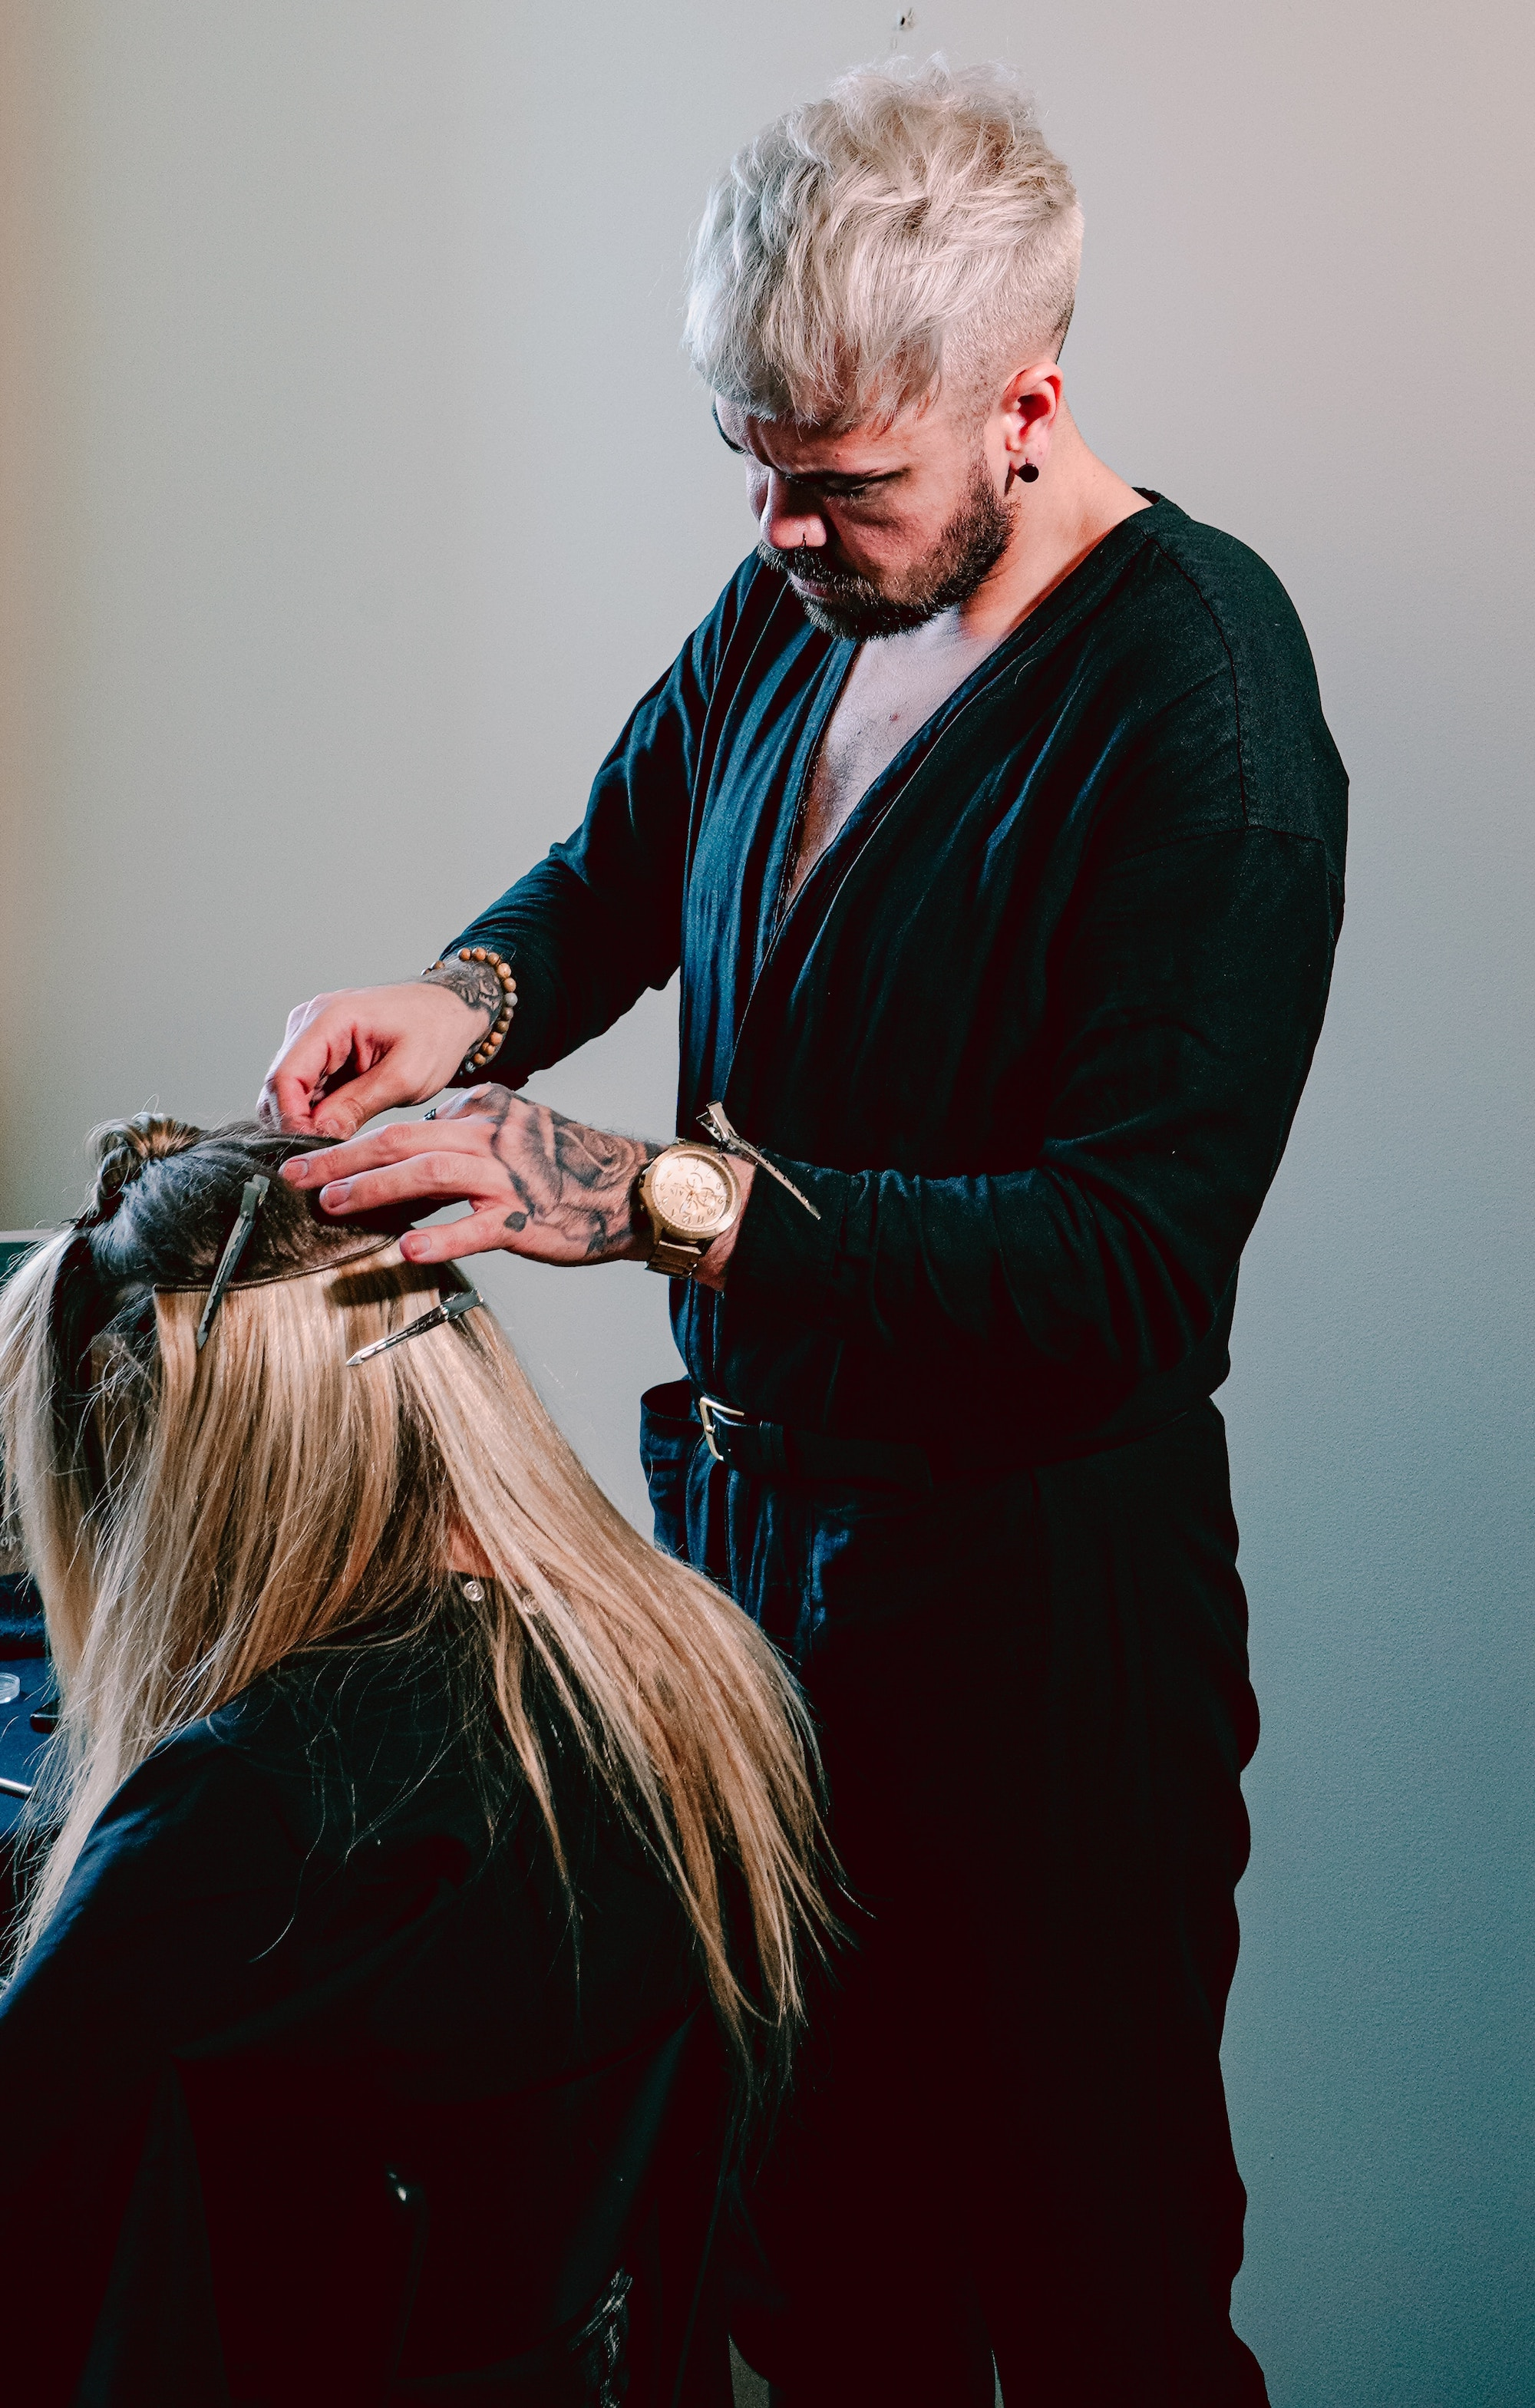 Hair stylist putting in clip-in extensions